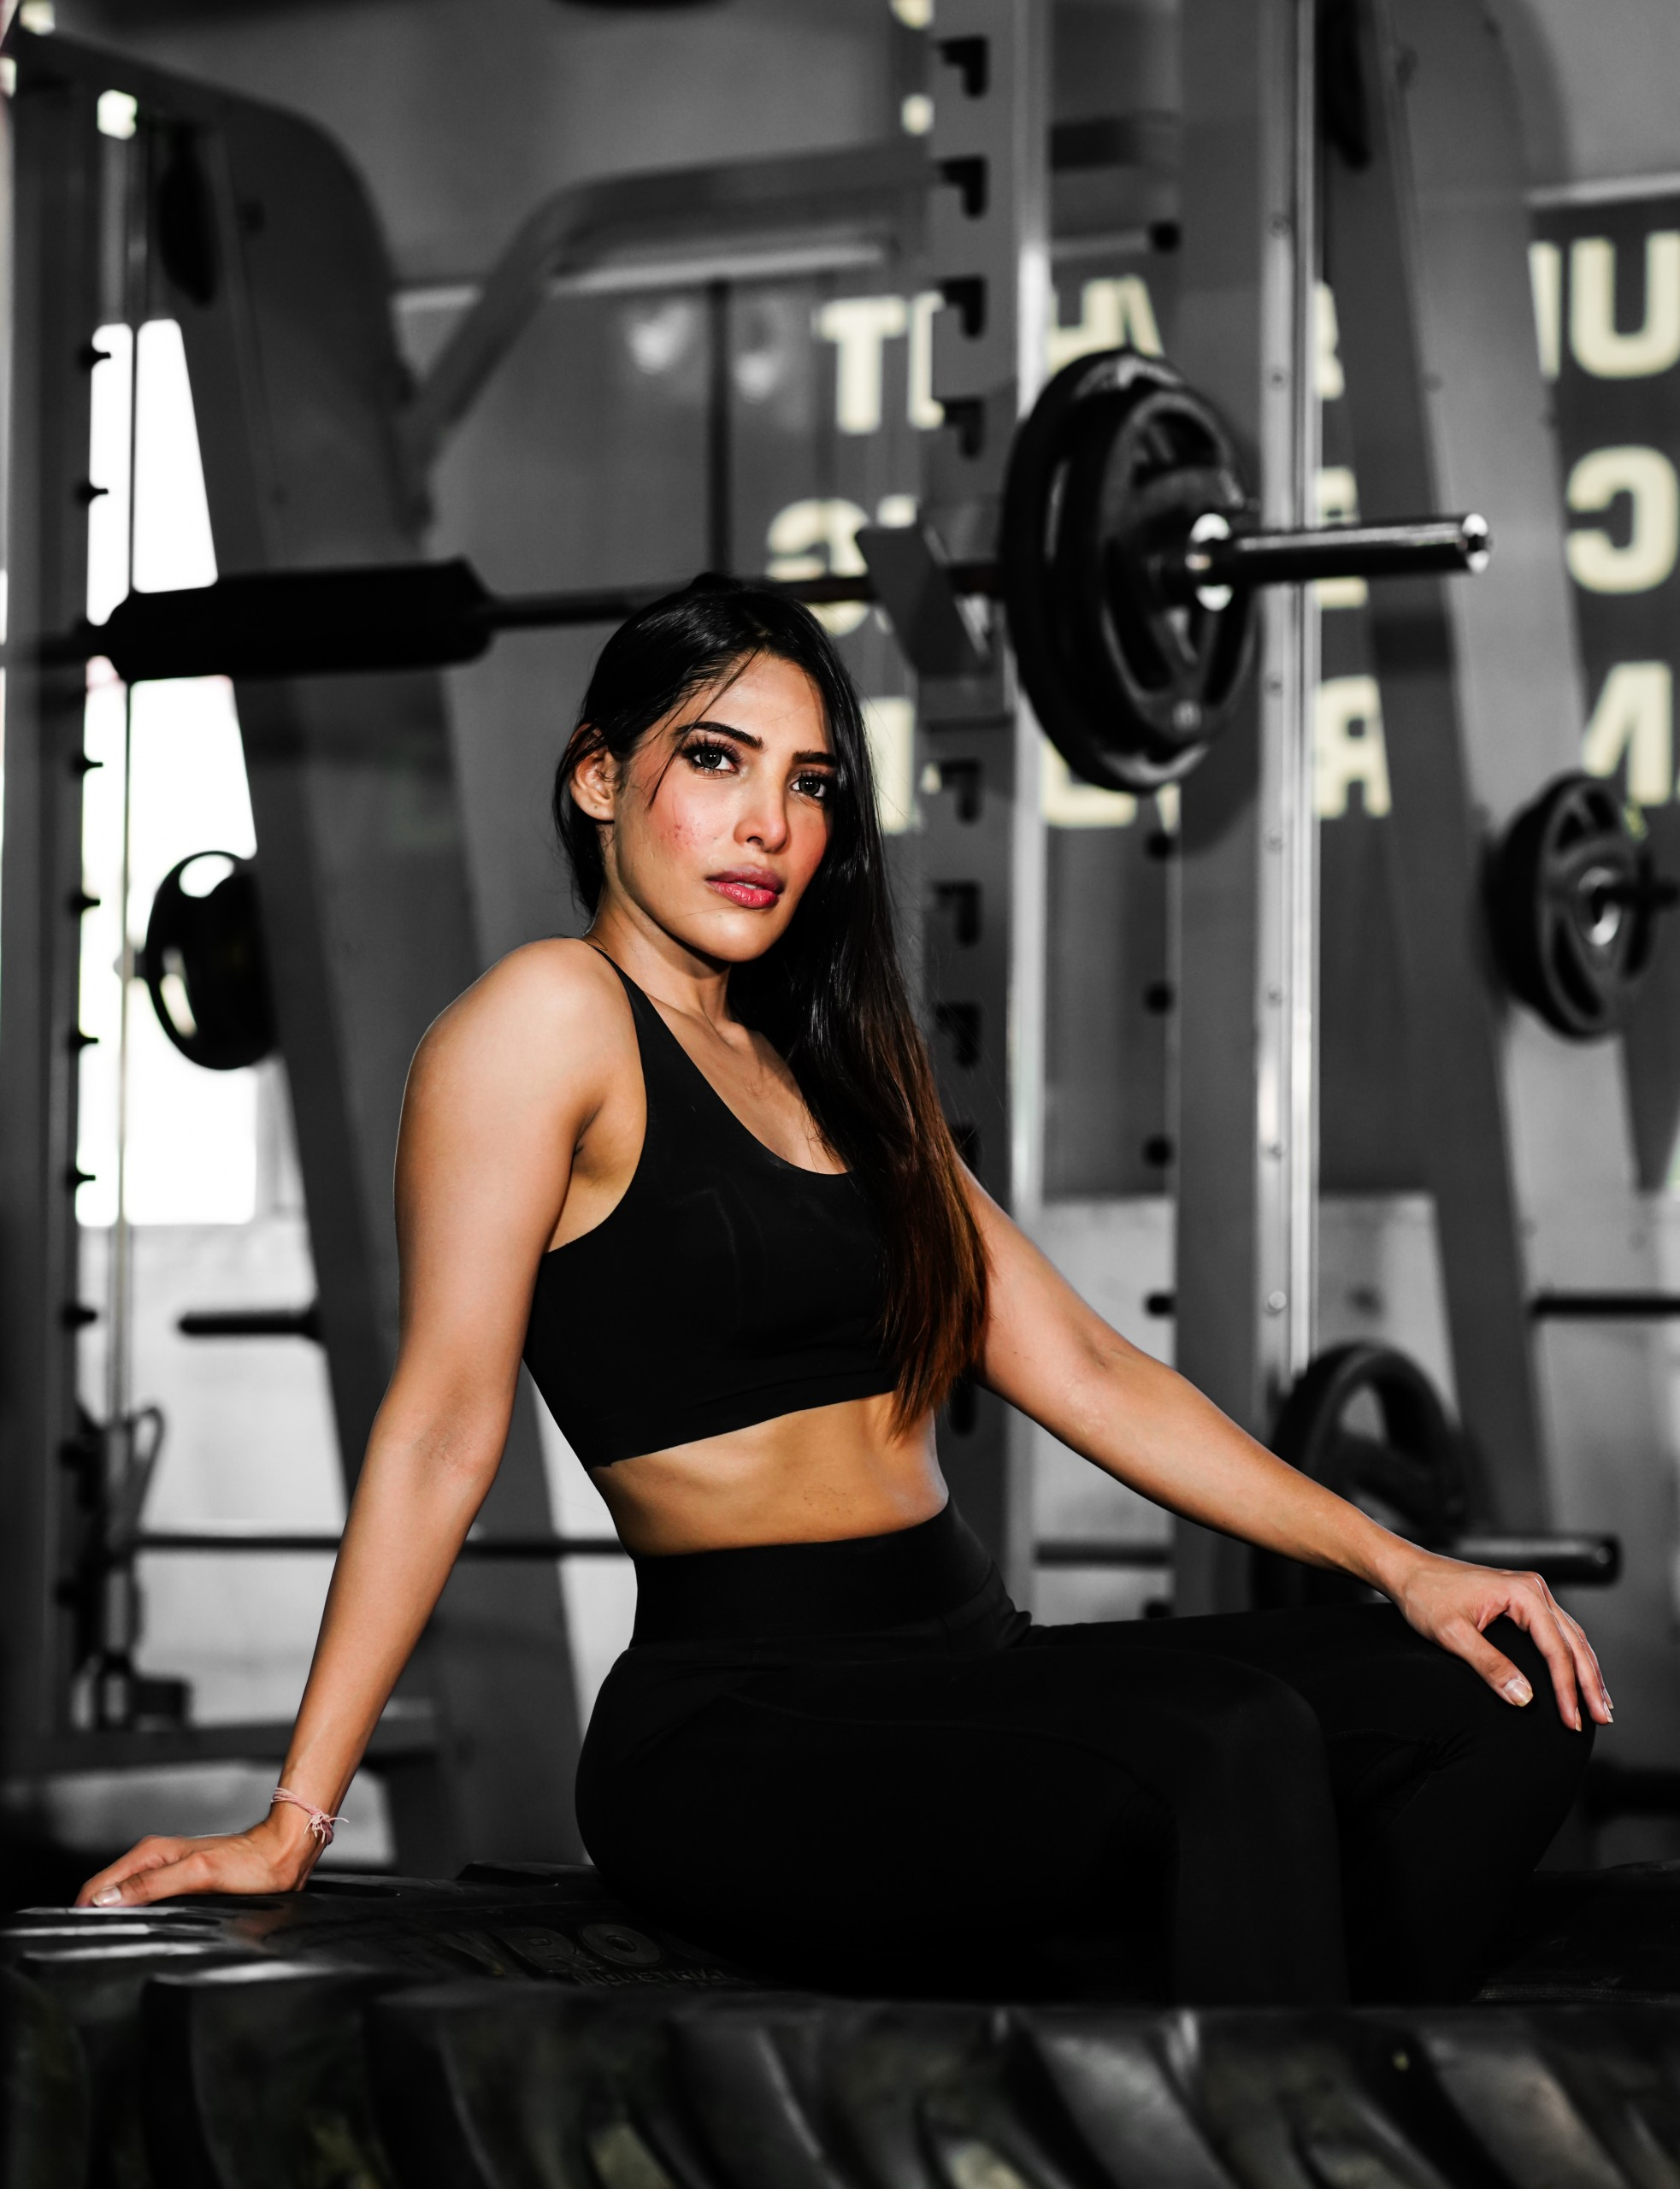 Beautiful woman pose after workout in gym